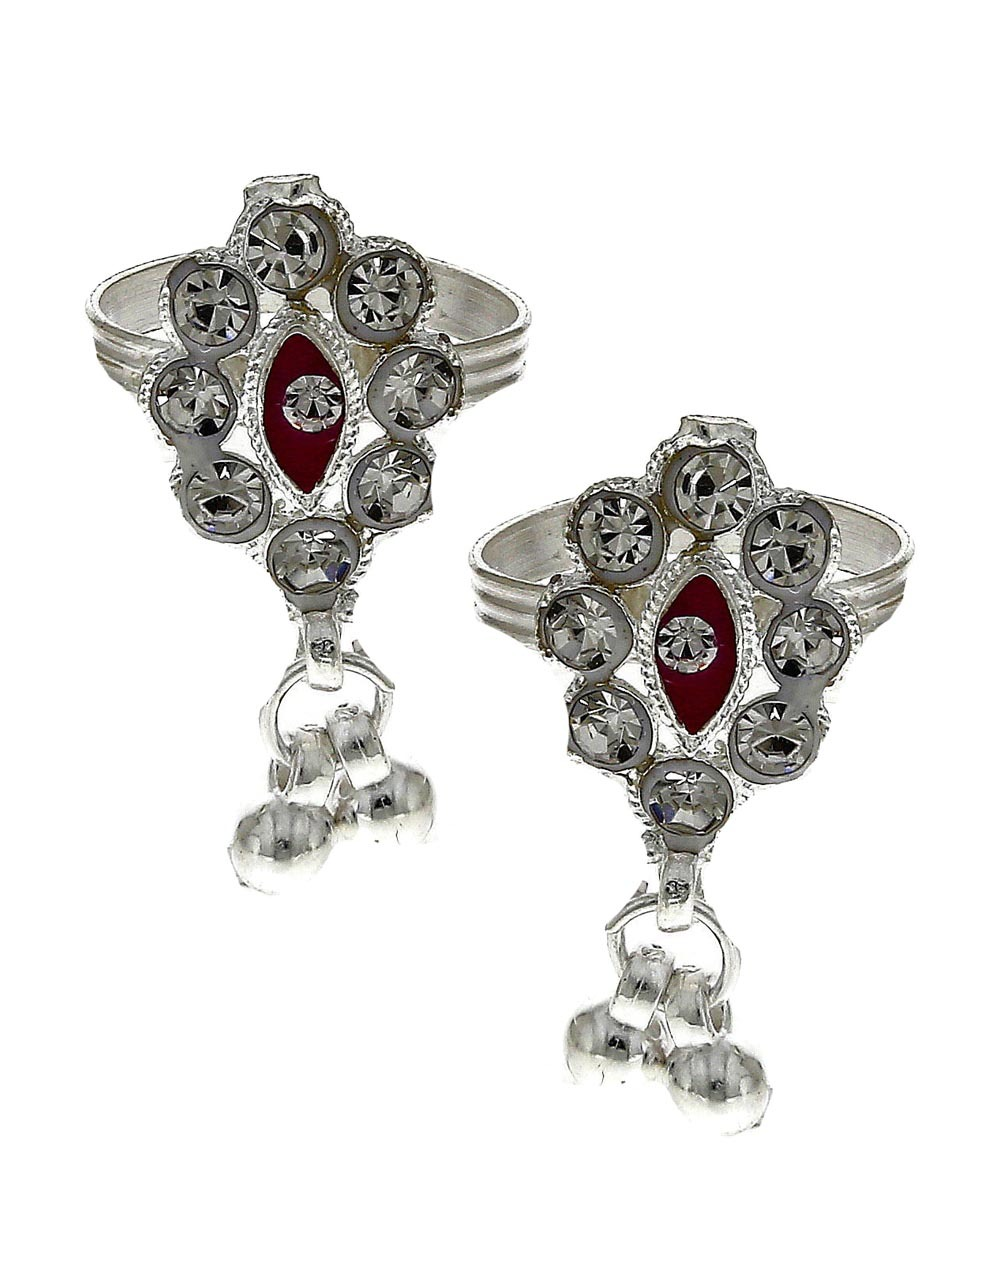 Attractive classic red stone silver finish bichhudi for woman